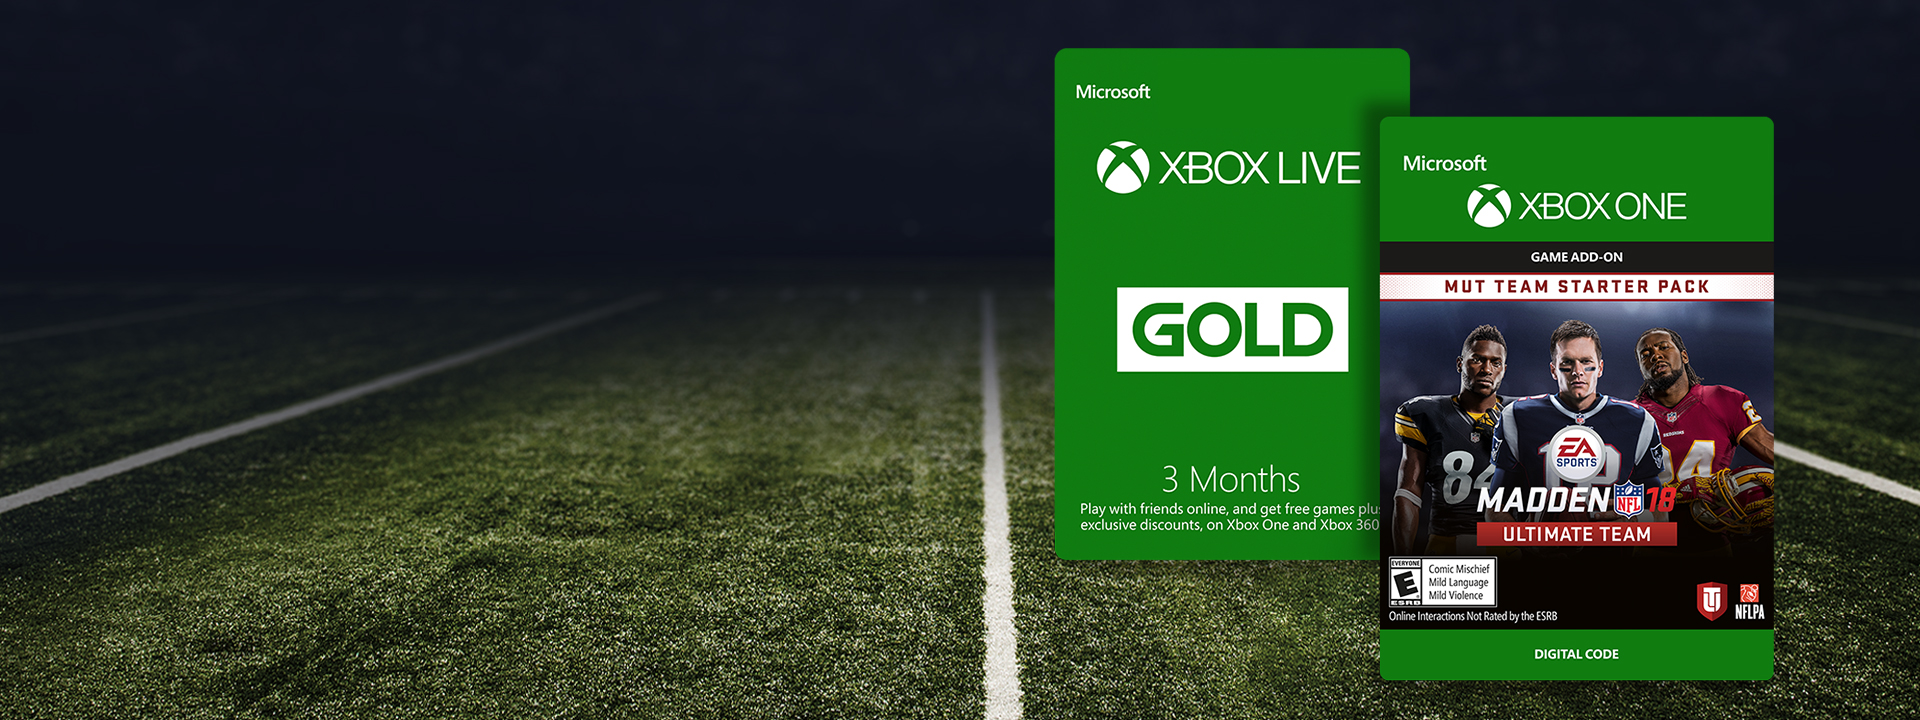 You're already and Xbox Live Gold member